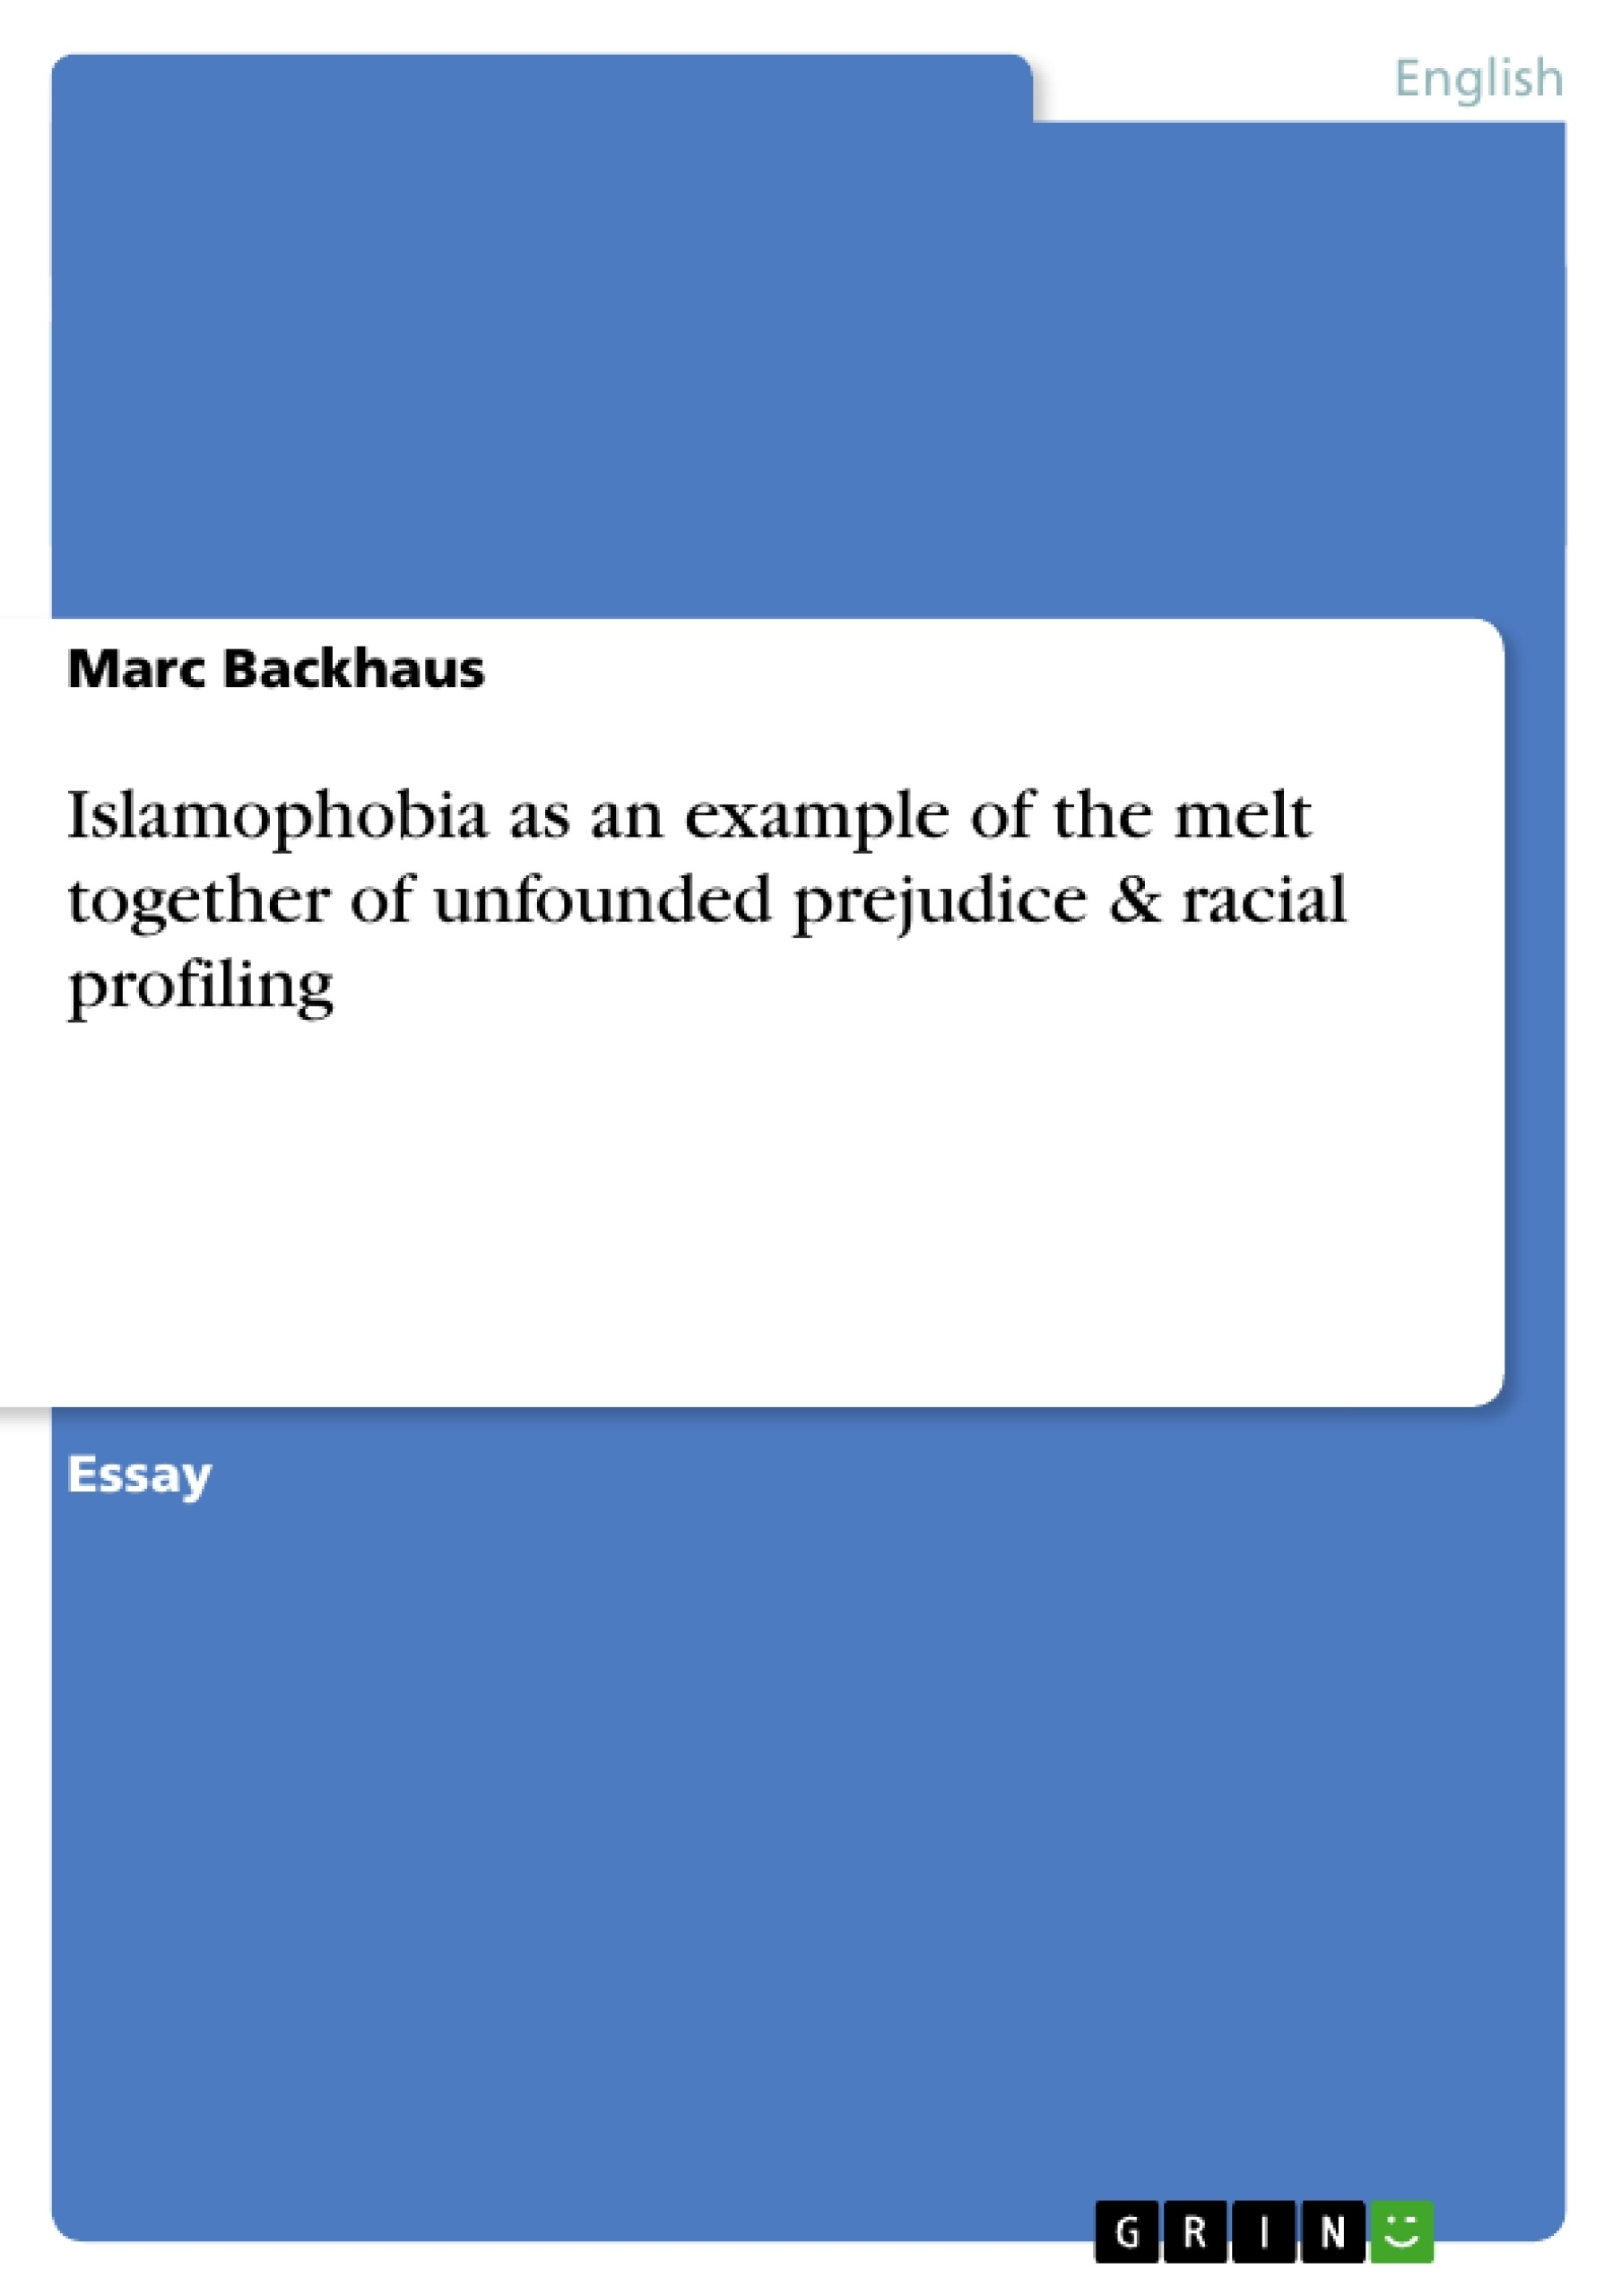 thesis statement on racial profiling Racial profiling research paper quantitative research how do i write my thesis statement posted on september 11, 2018 by .